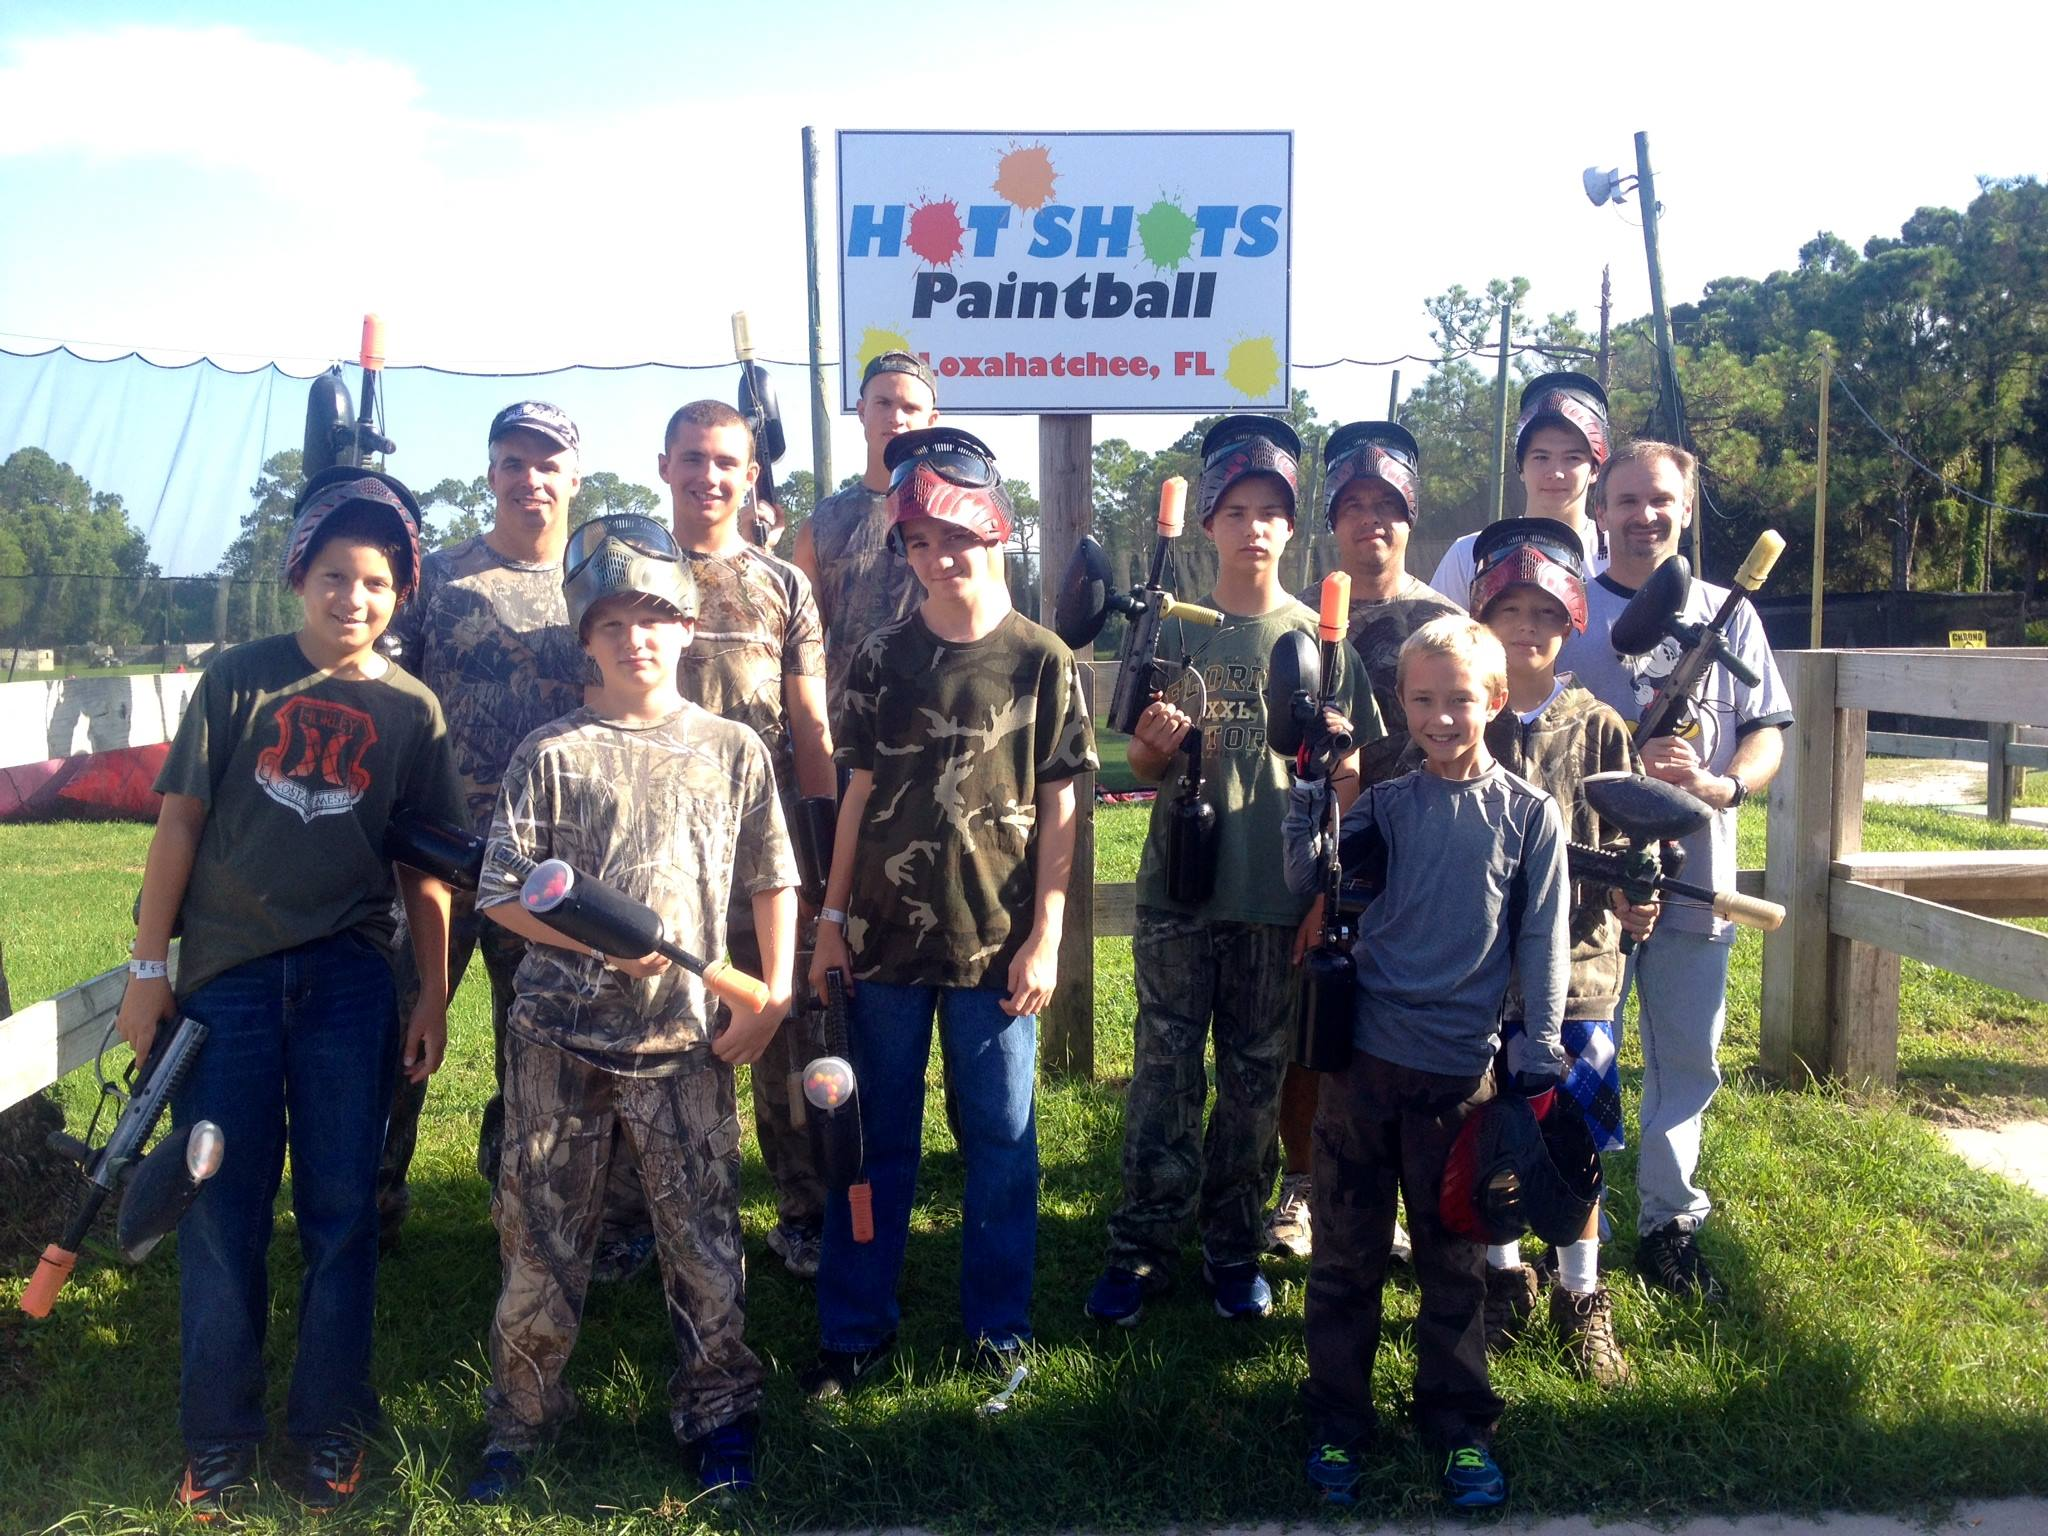 Hotshots Paintball - Loxahatchee Groves Appointments